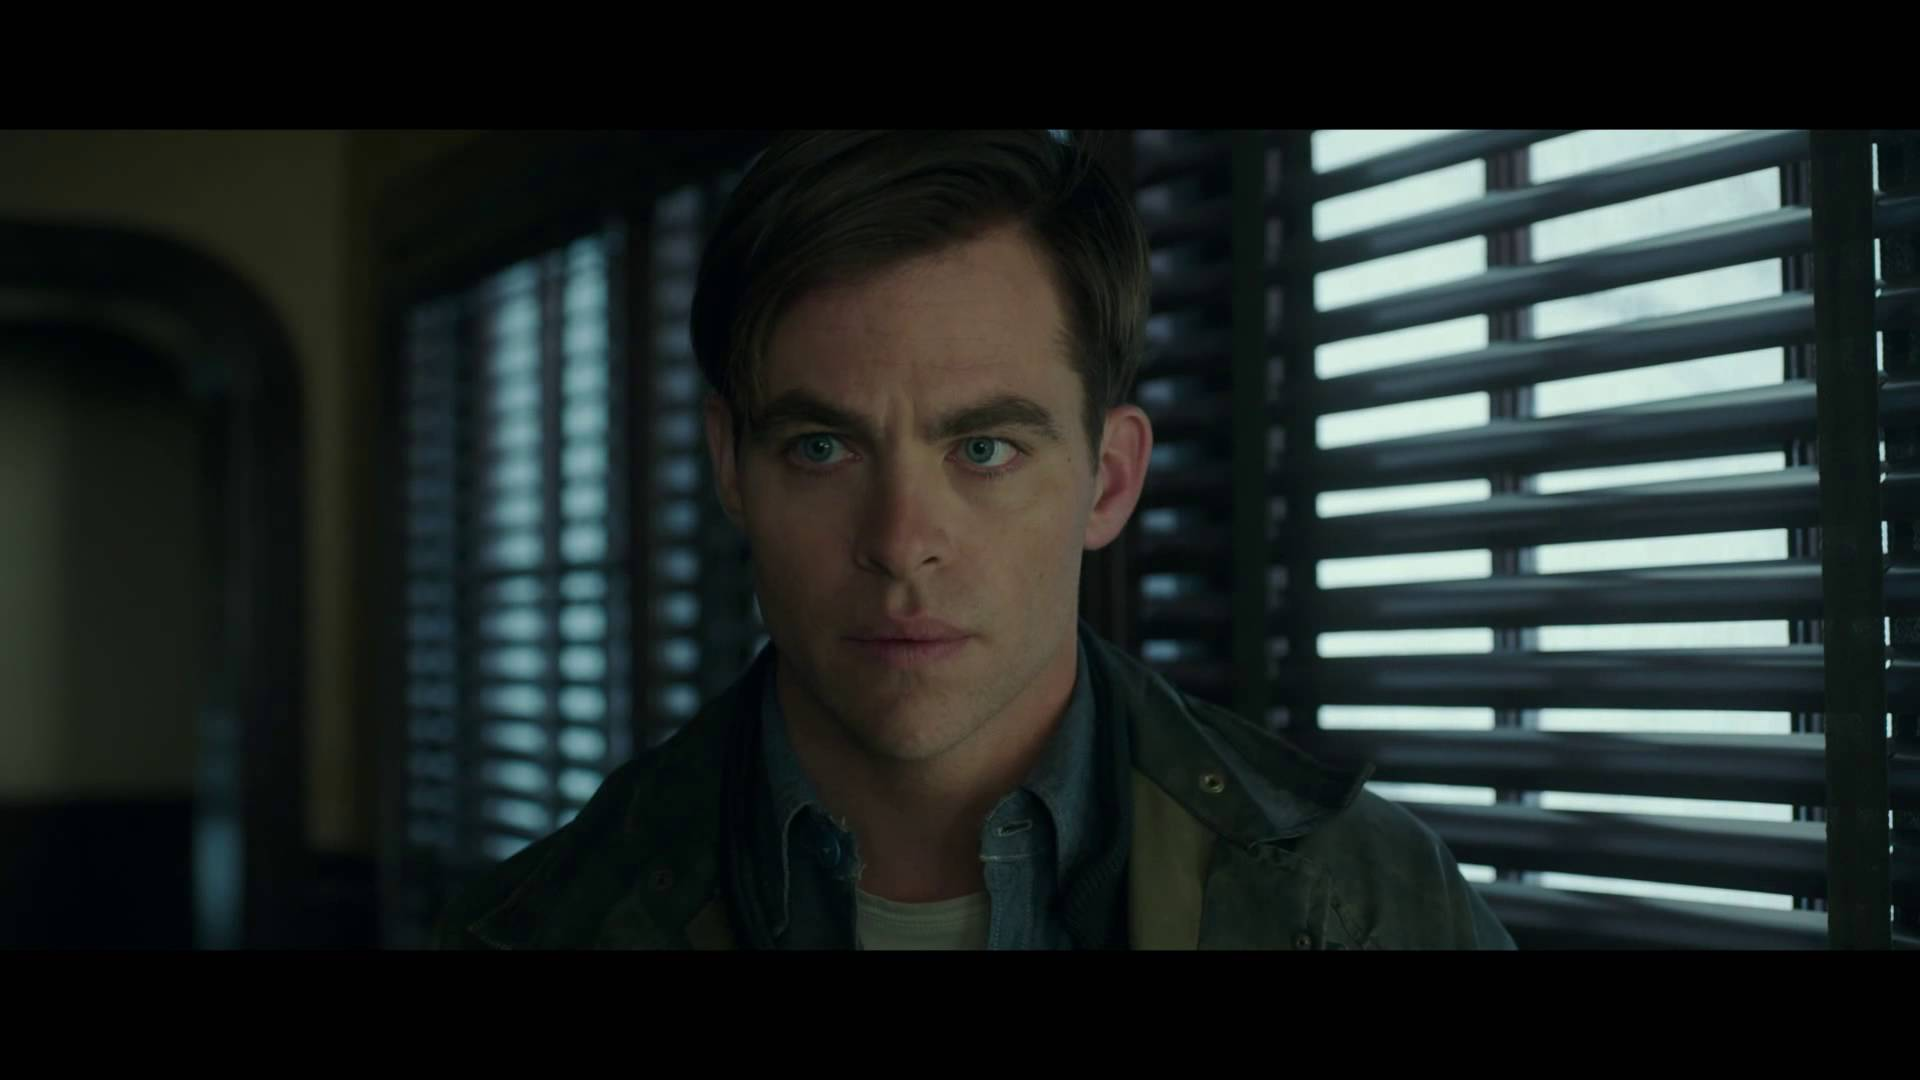 The Finest Hours – Behind The Scene Featurette